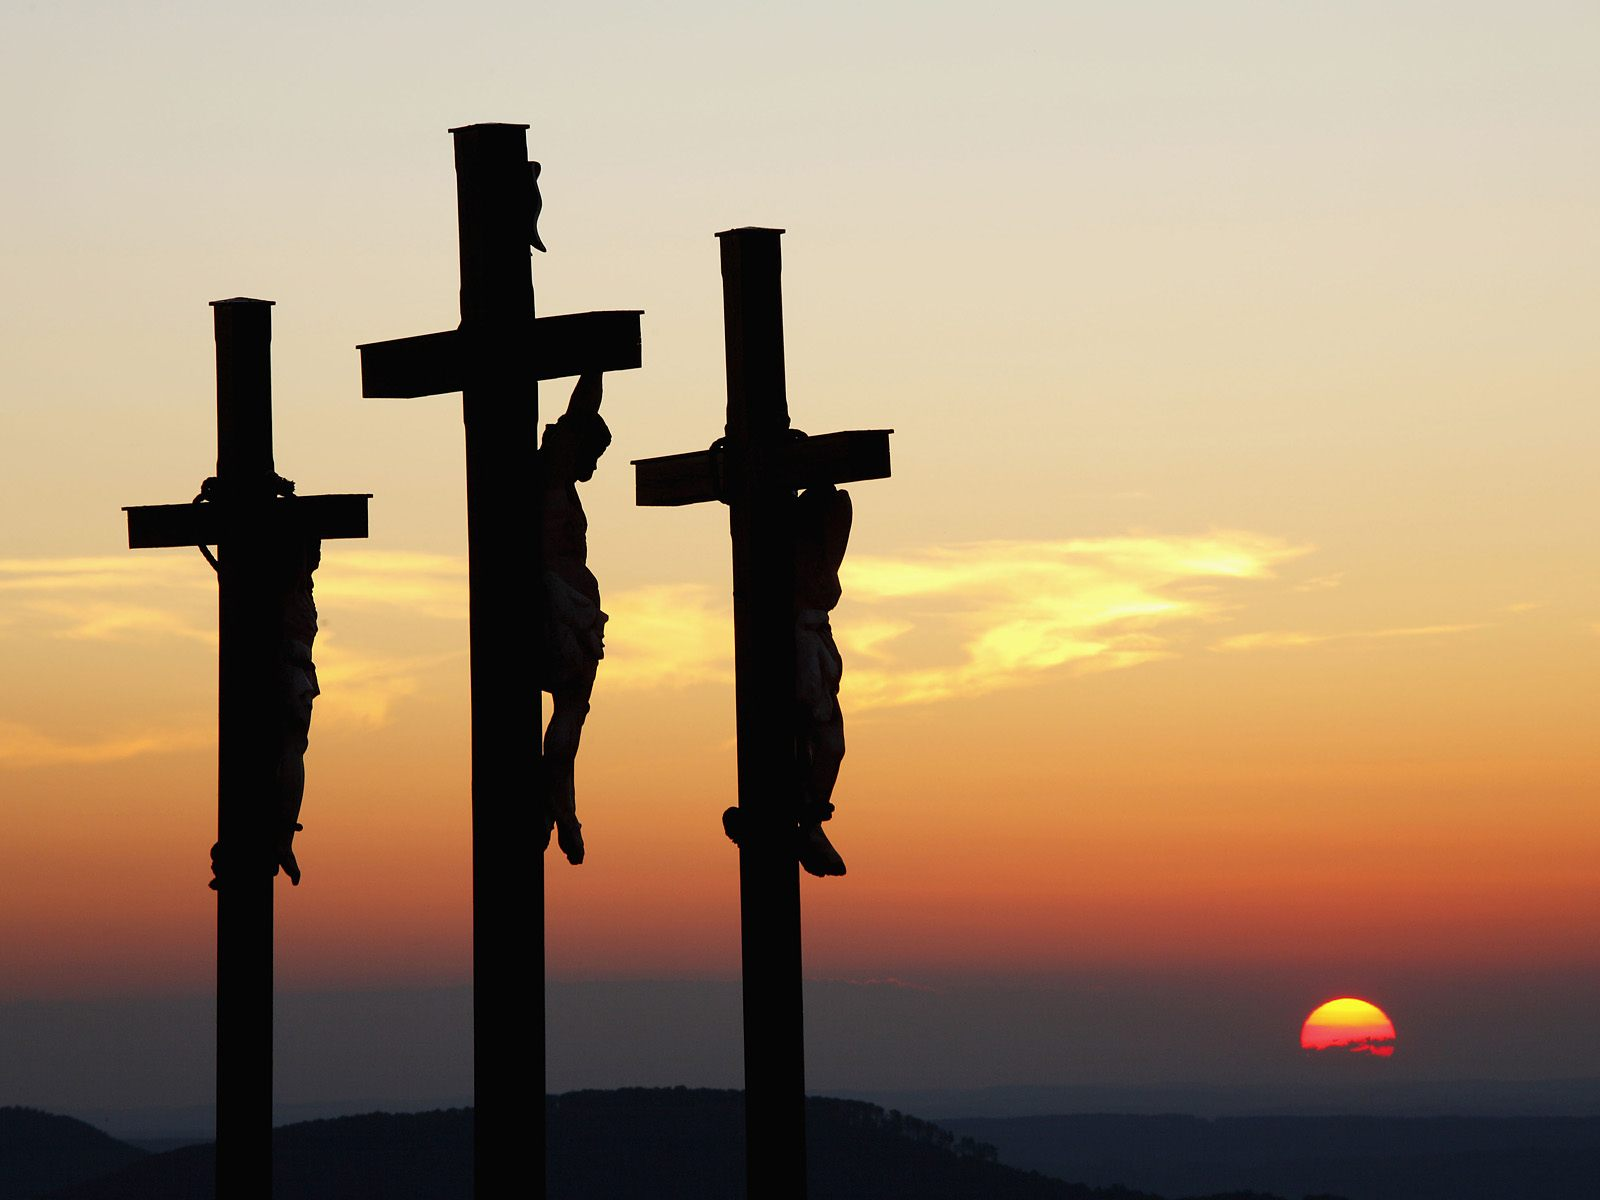 Why was jesus executed